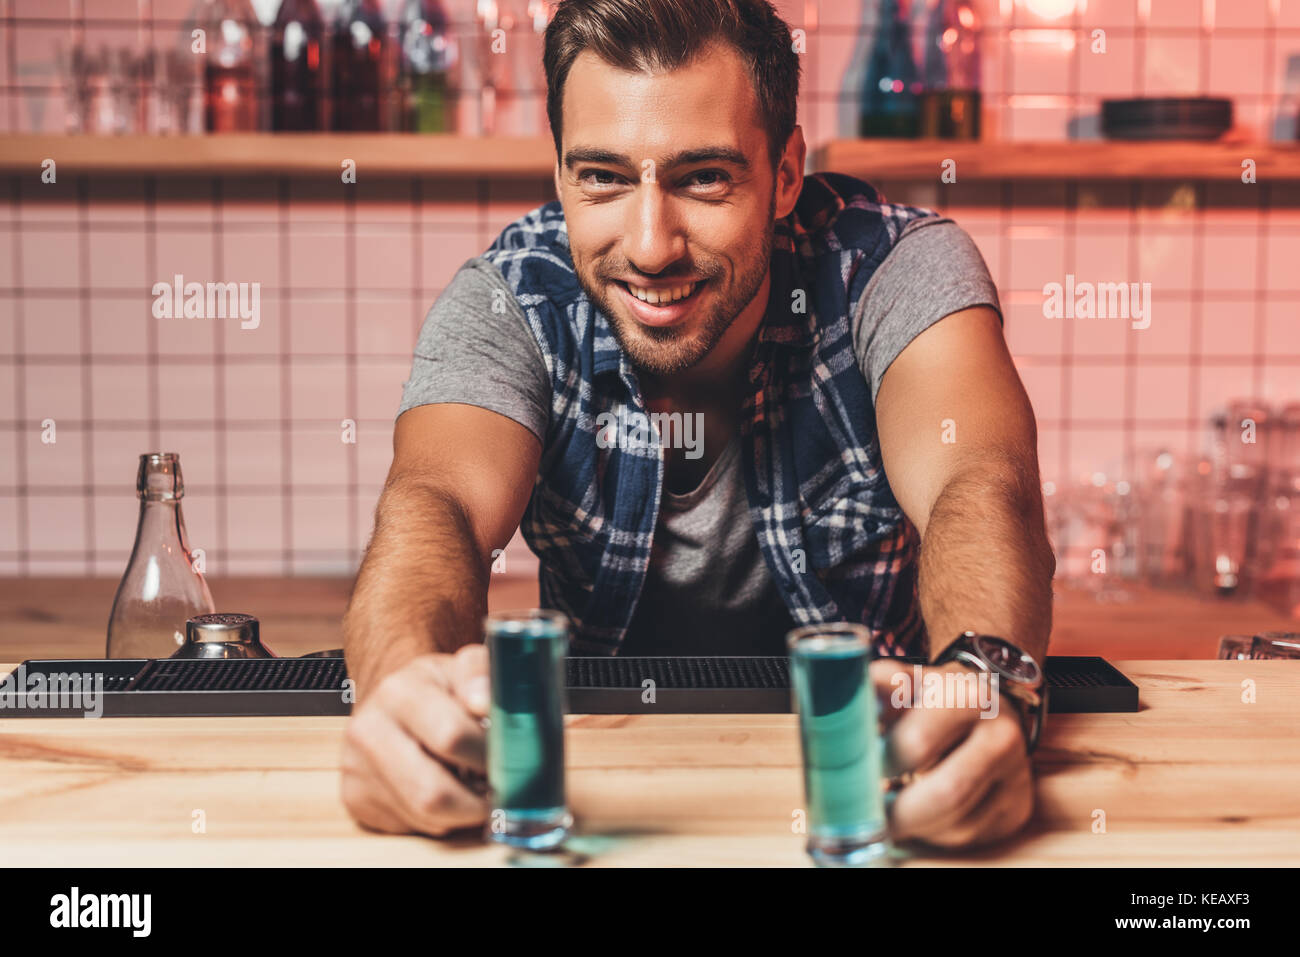 barman with alcohol shots on counter - Stock Image